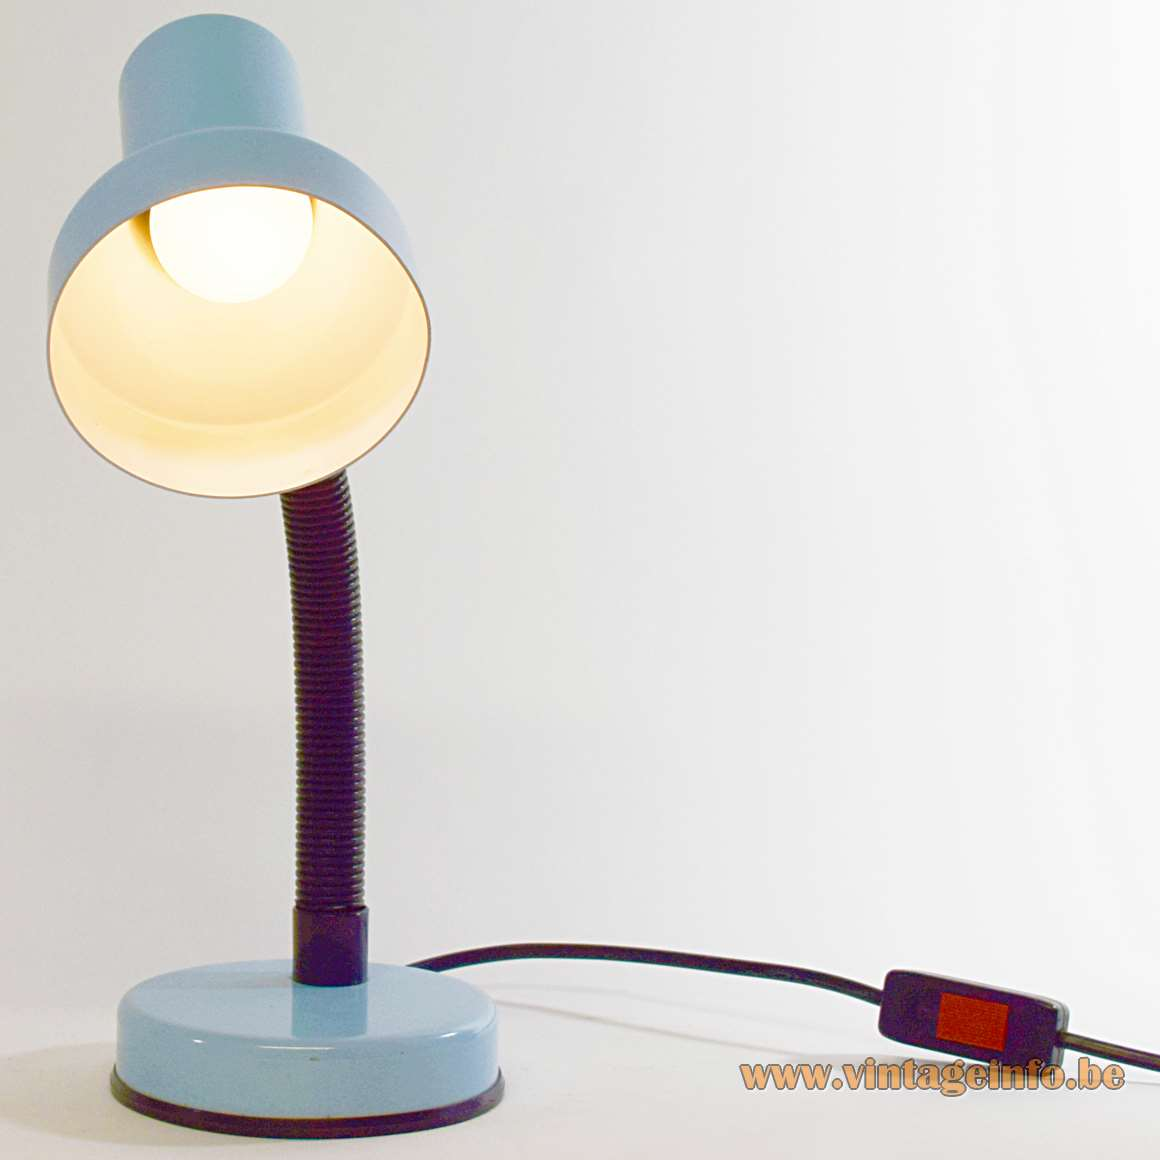 Veneta Lumi Gooseneck Desk Lamp light blue painted round base black gooseneck light blue lampshade 1980s